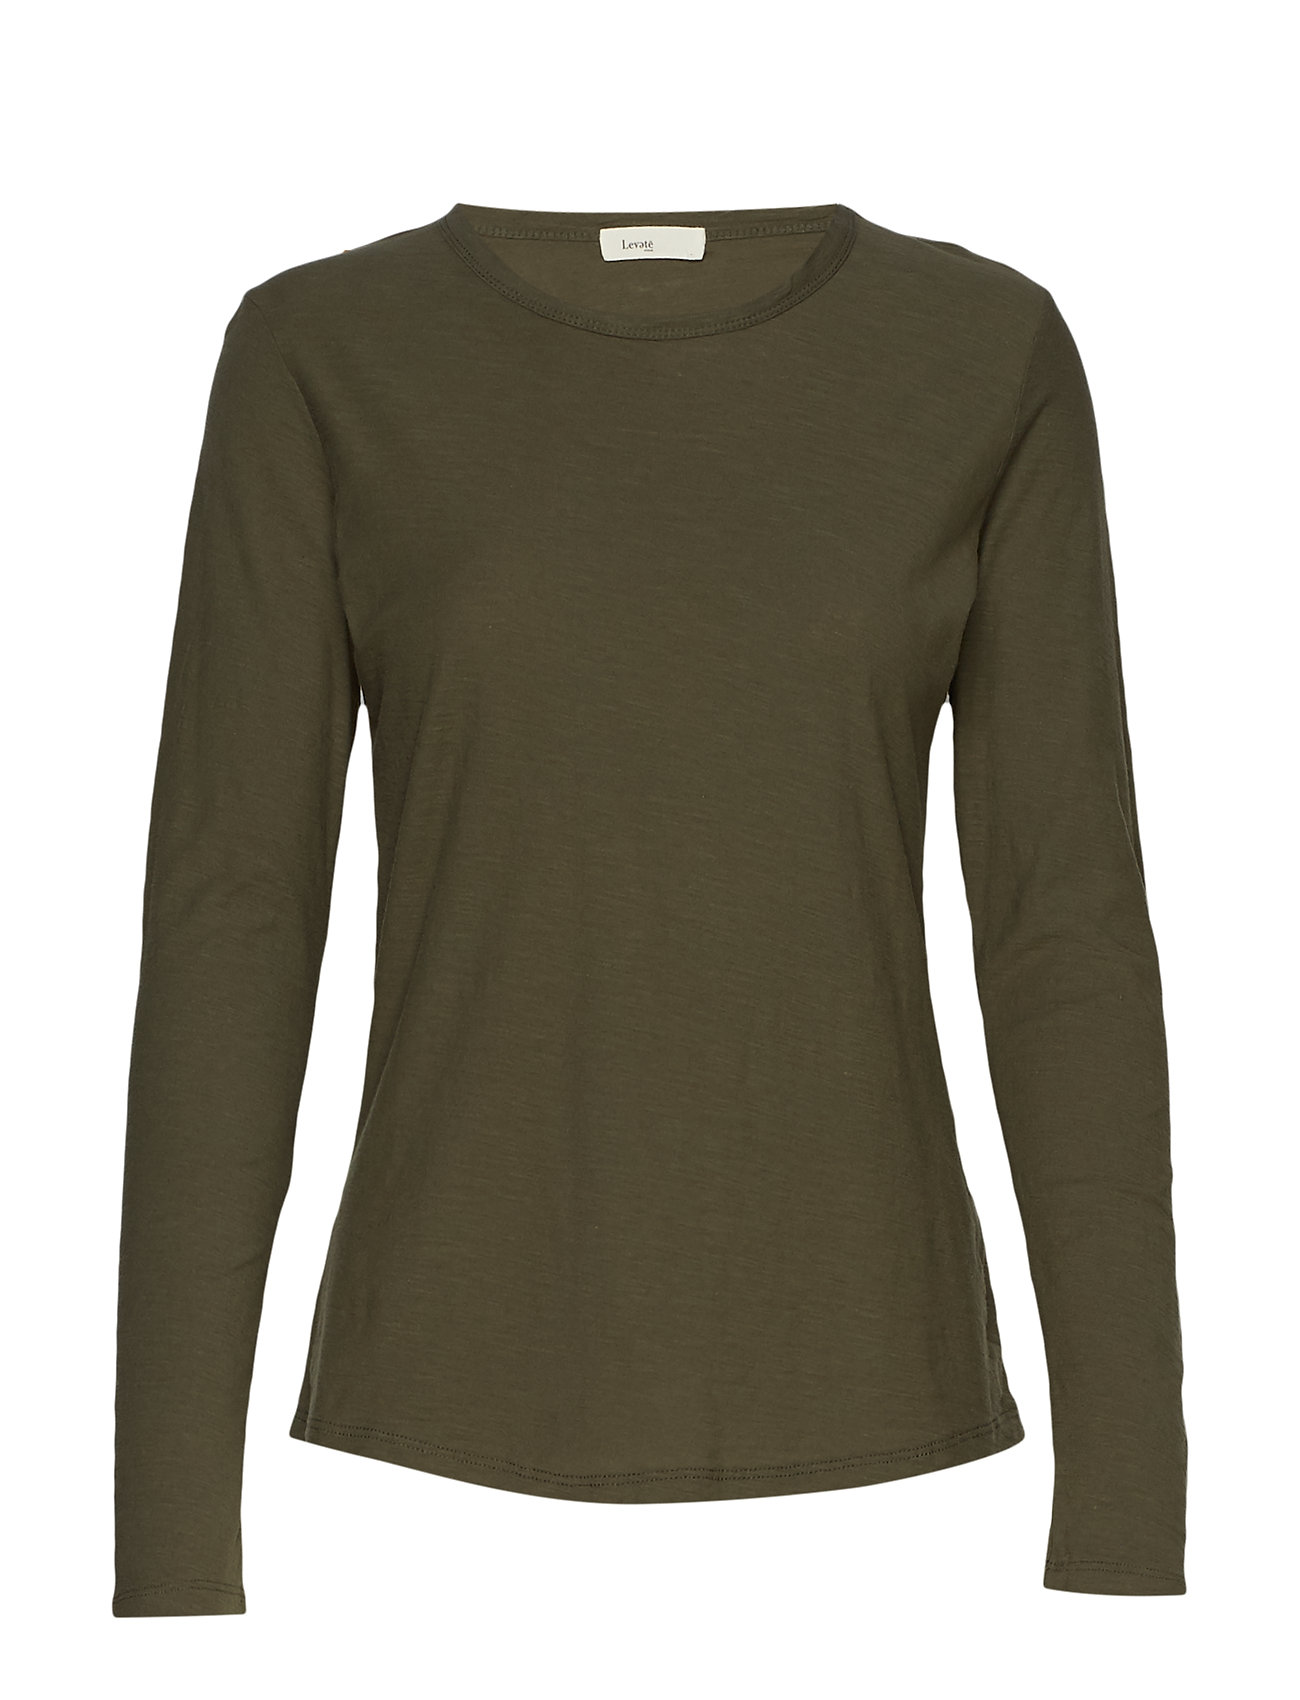 Levete Room LR-ANY - L707 - OLIVE NIGHT